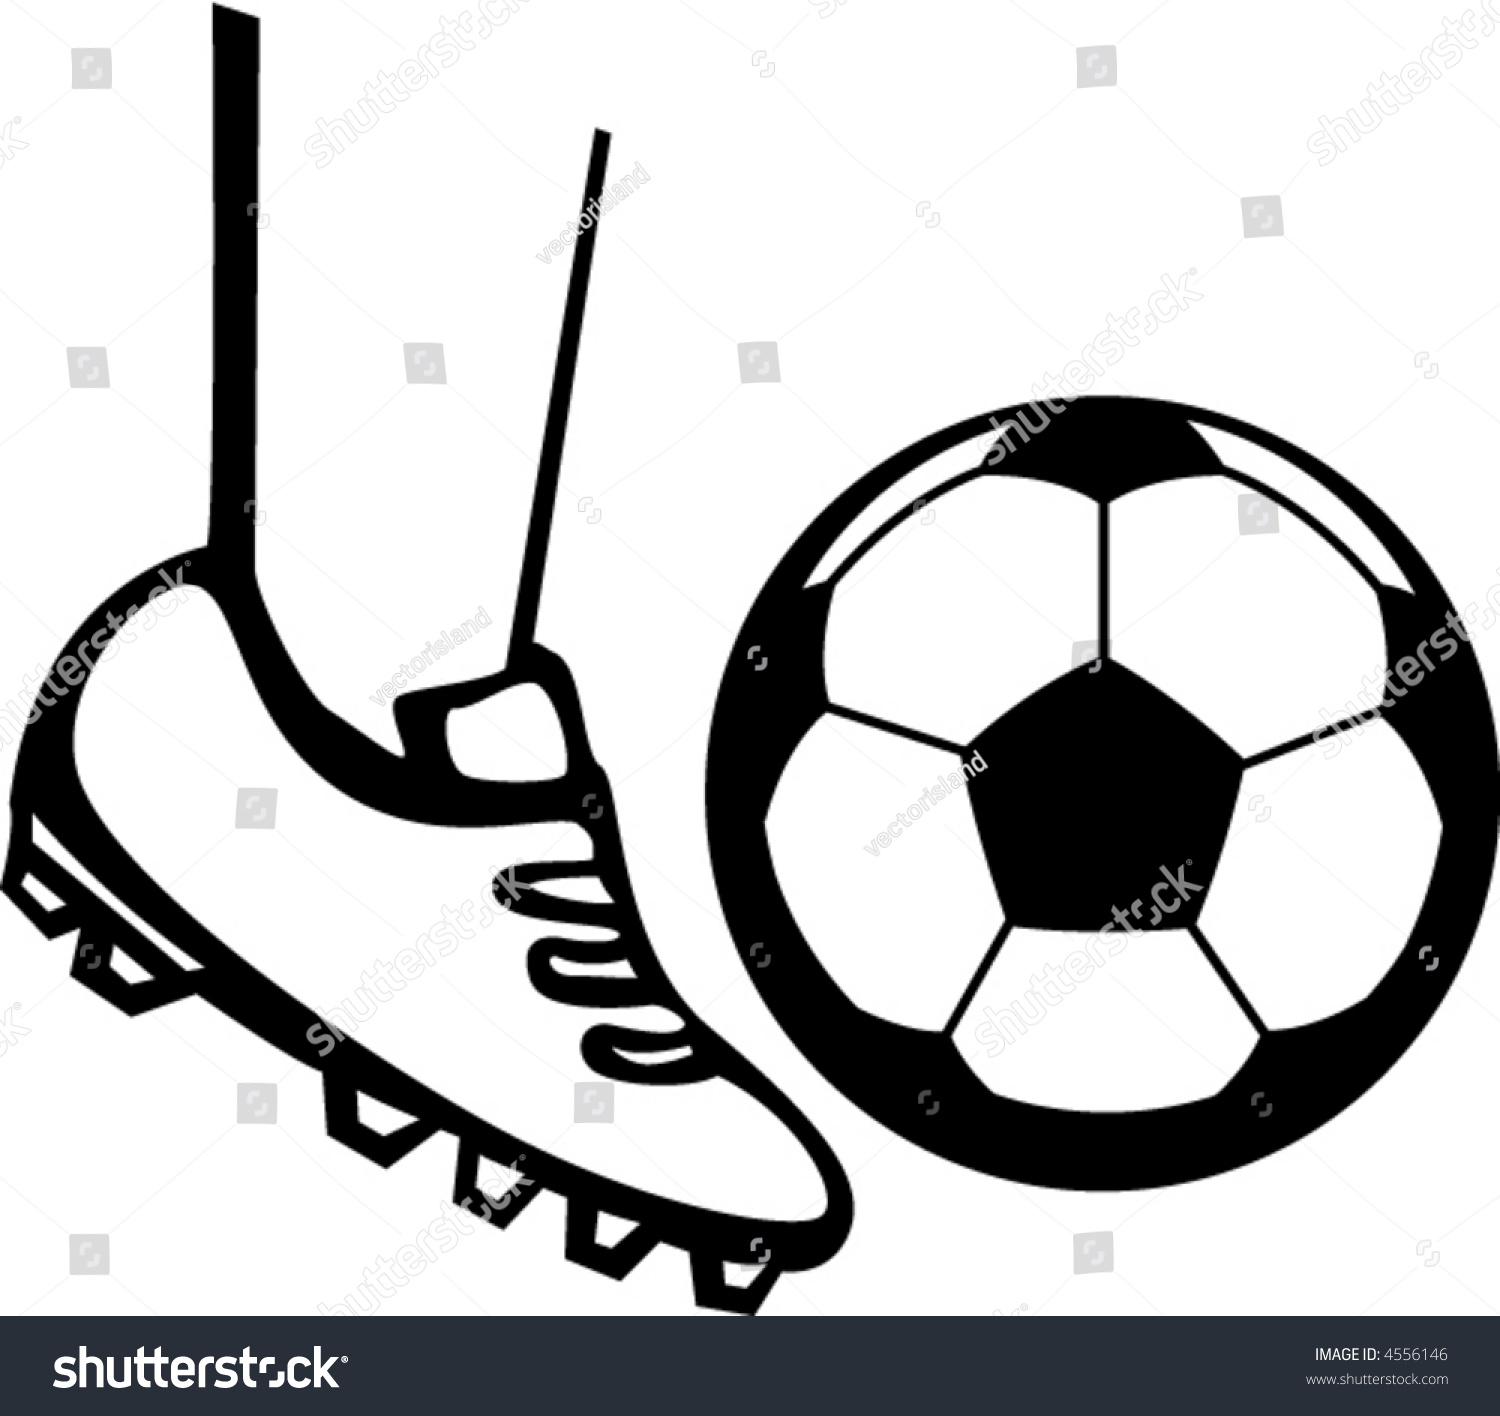 1500x1416 Soccer Clipart Soccer Ball Cleat